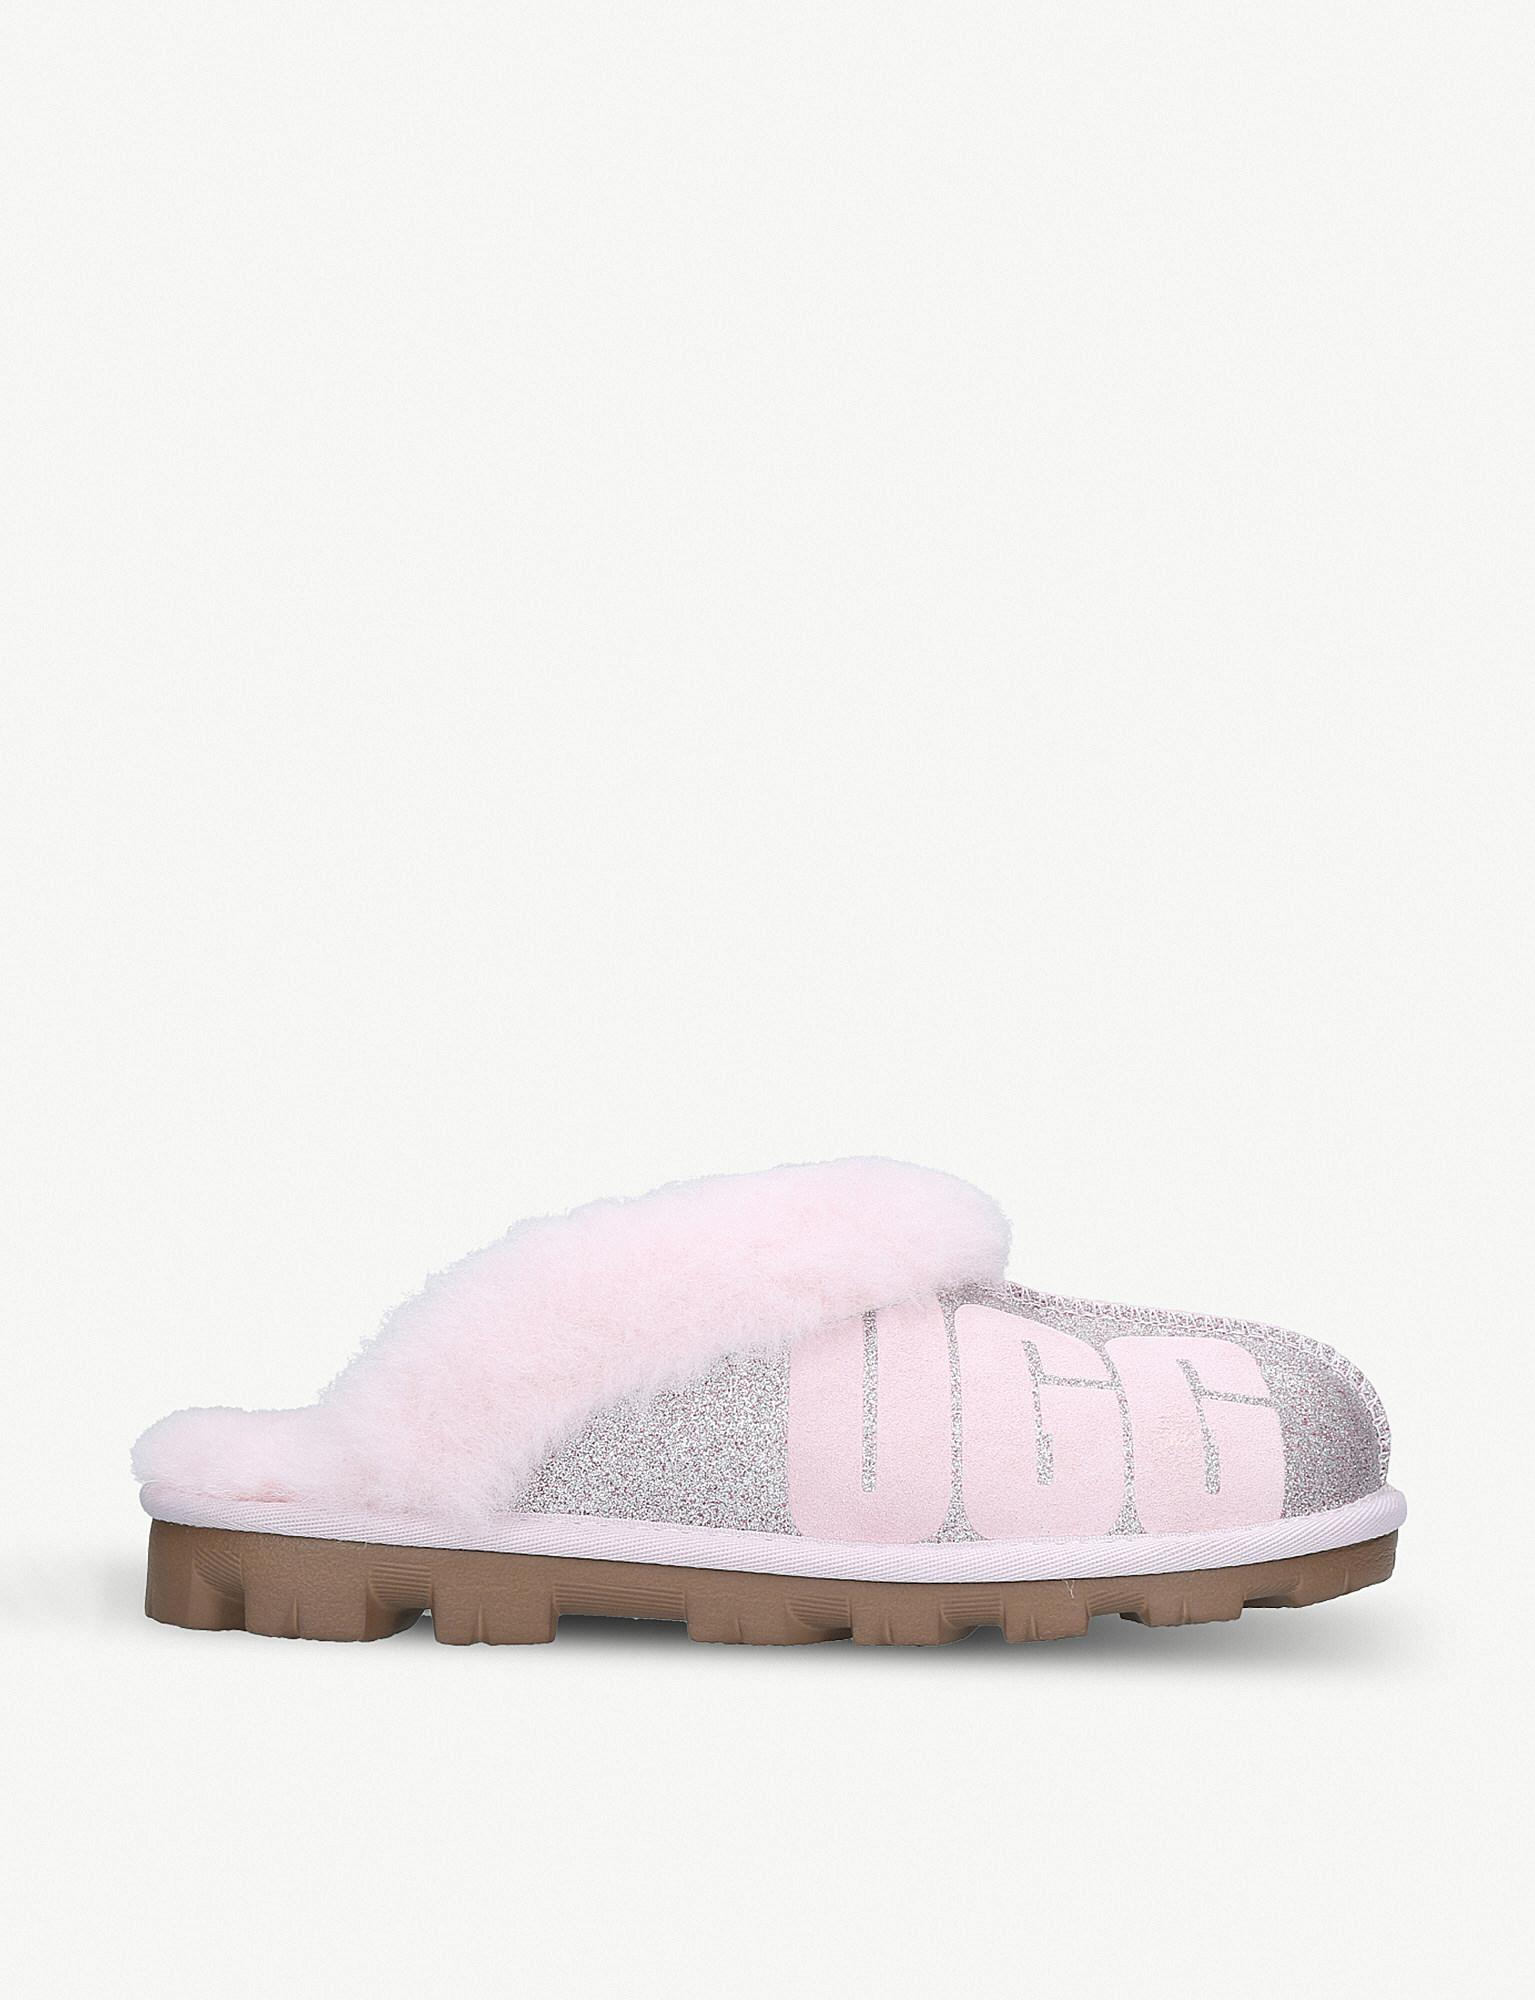 a2fa138b449 Ugg Coquette Sparkle Suede And Sheepskin Slippers in Pink - Lyst